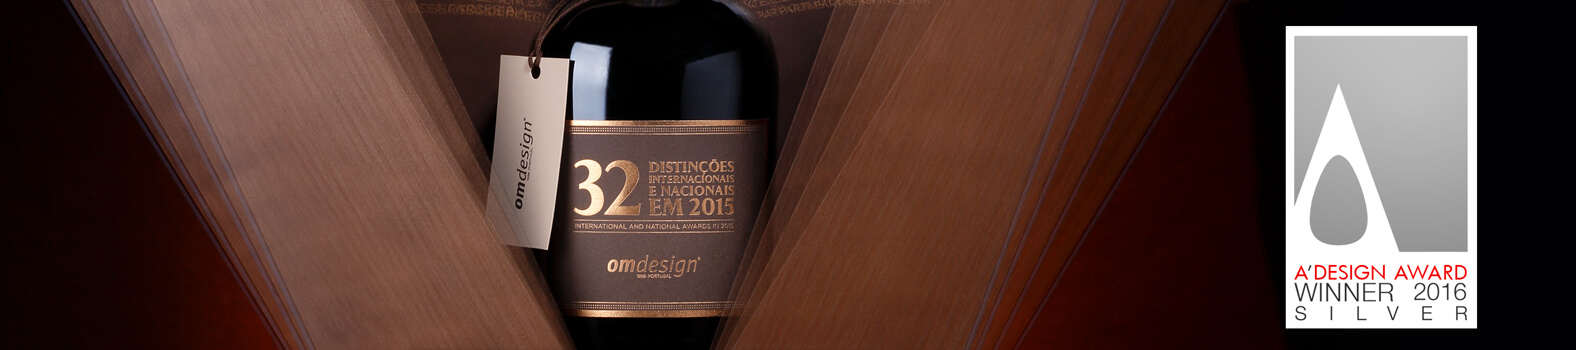 Omdesign traz 7 prémios do A' Design Award